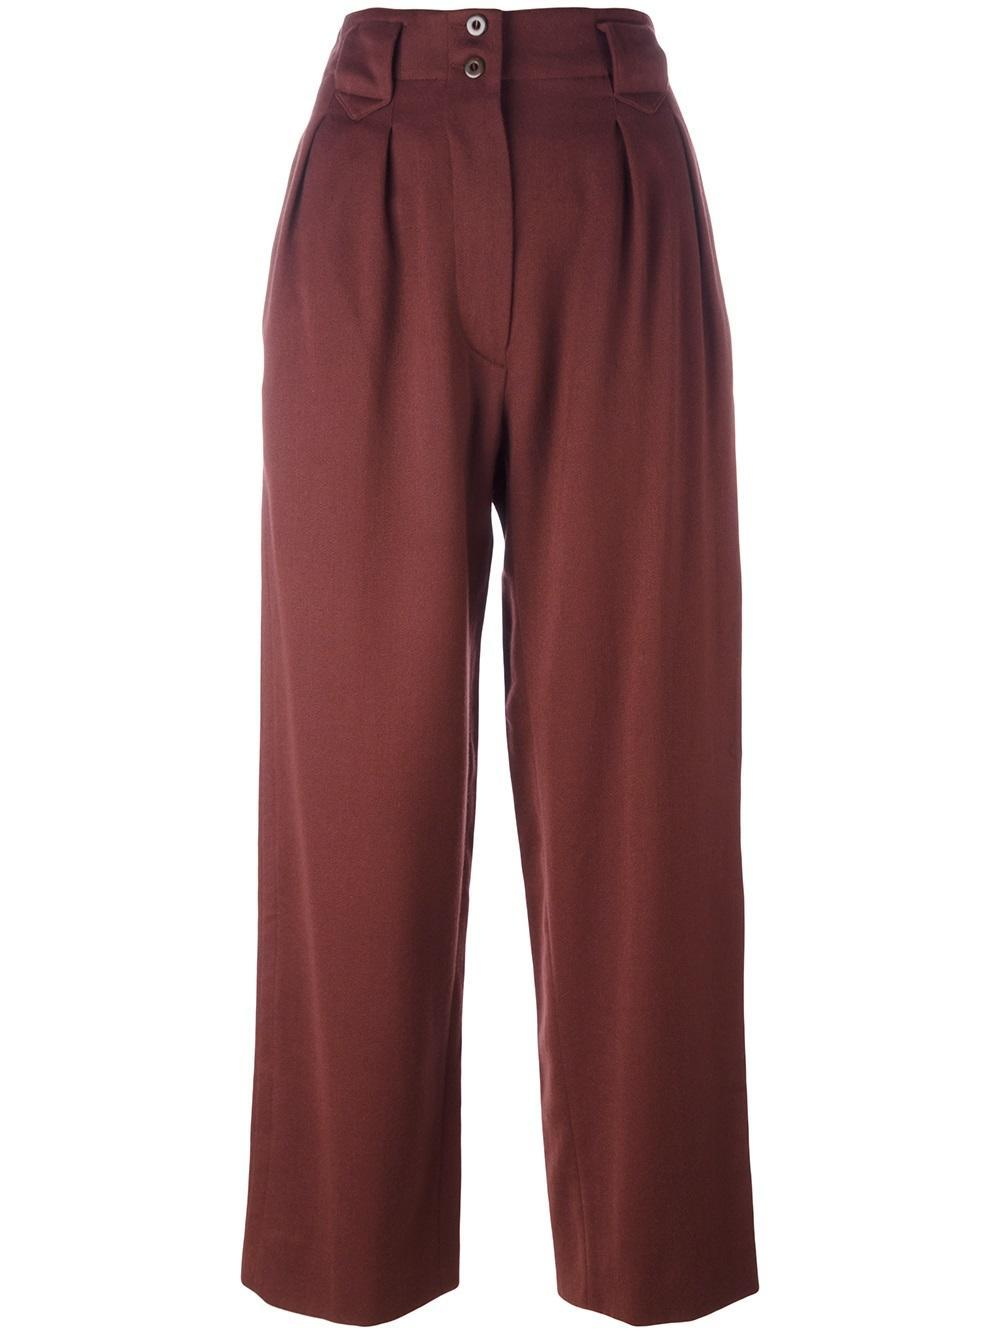 Alaa Alaa Vintage High Waisted Tailored Trousers In